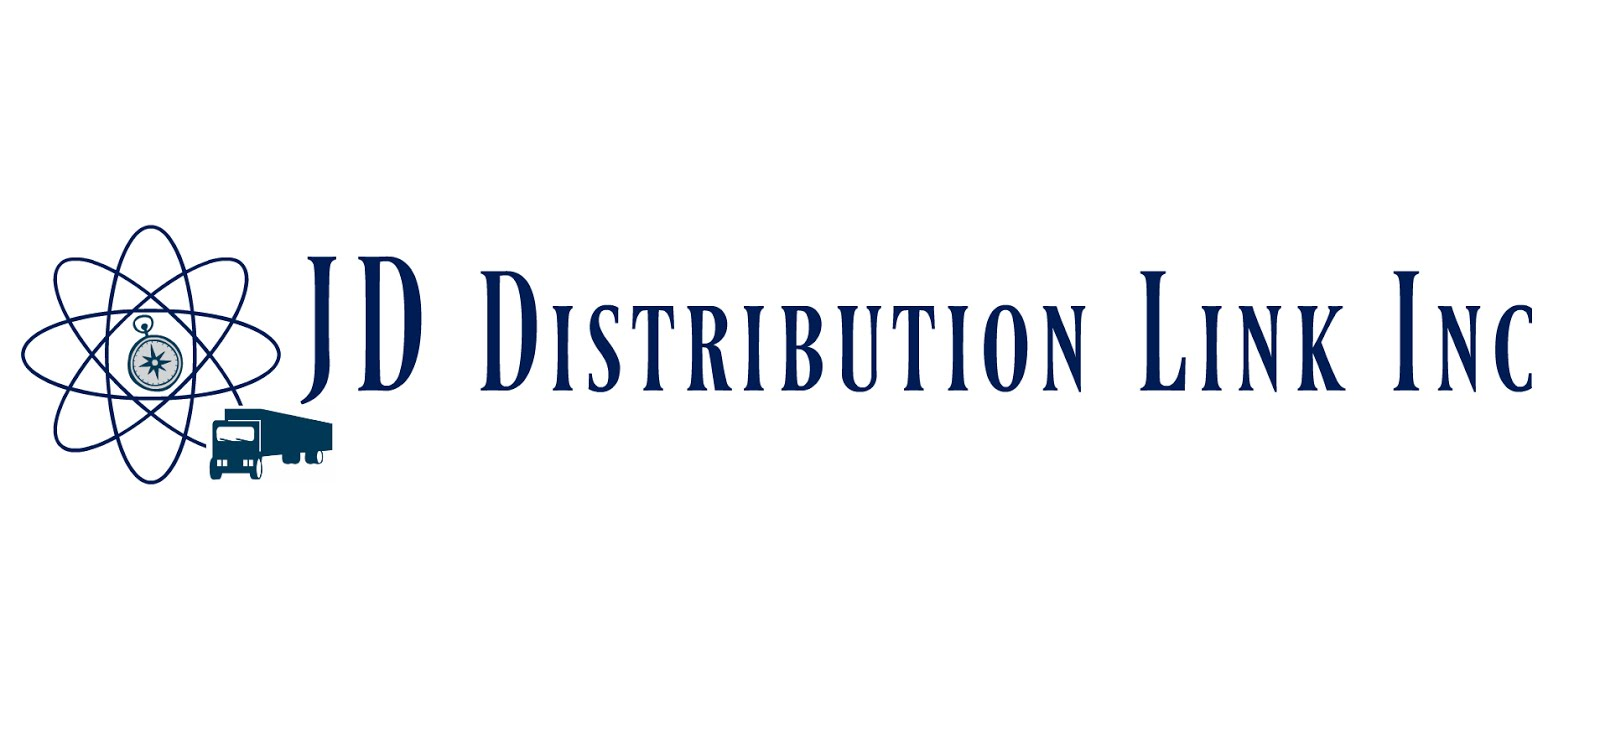 JD Distribution Link Inc.